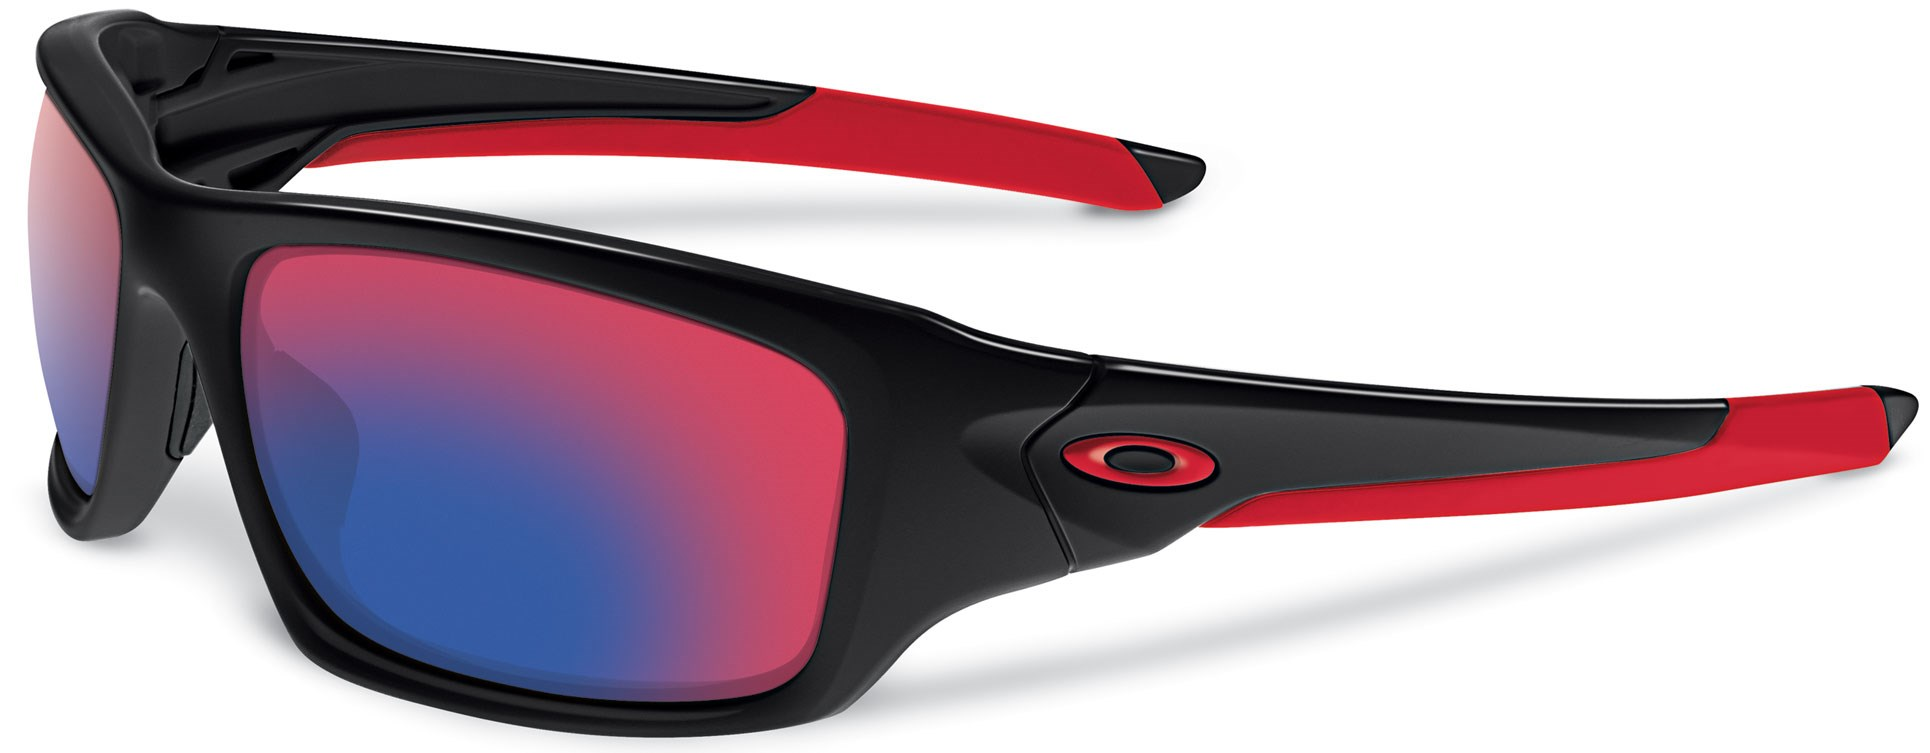 red and black oakleys  Oakley Valve Sunglasses (Polished Black/Positive Red Iridium)